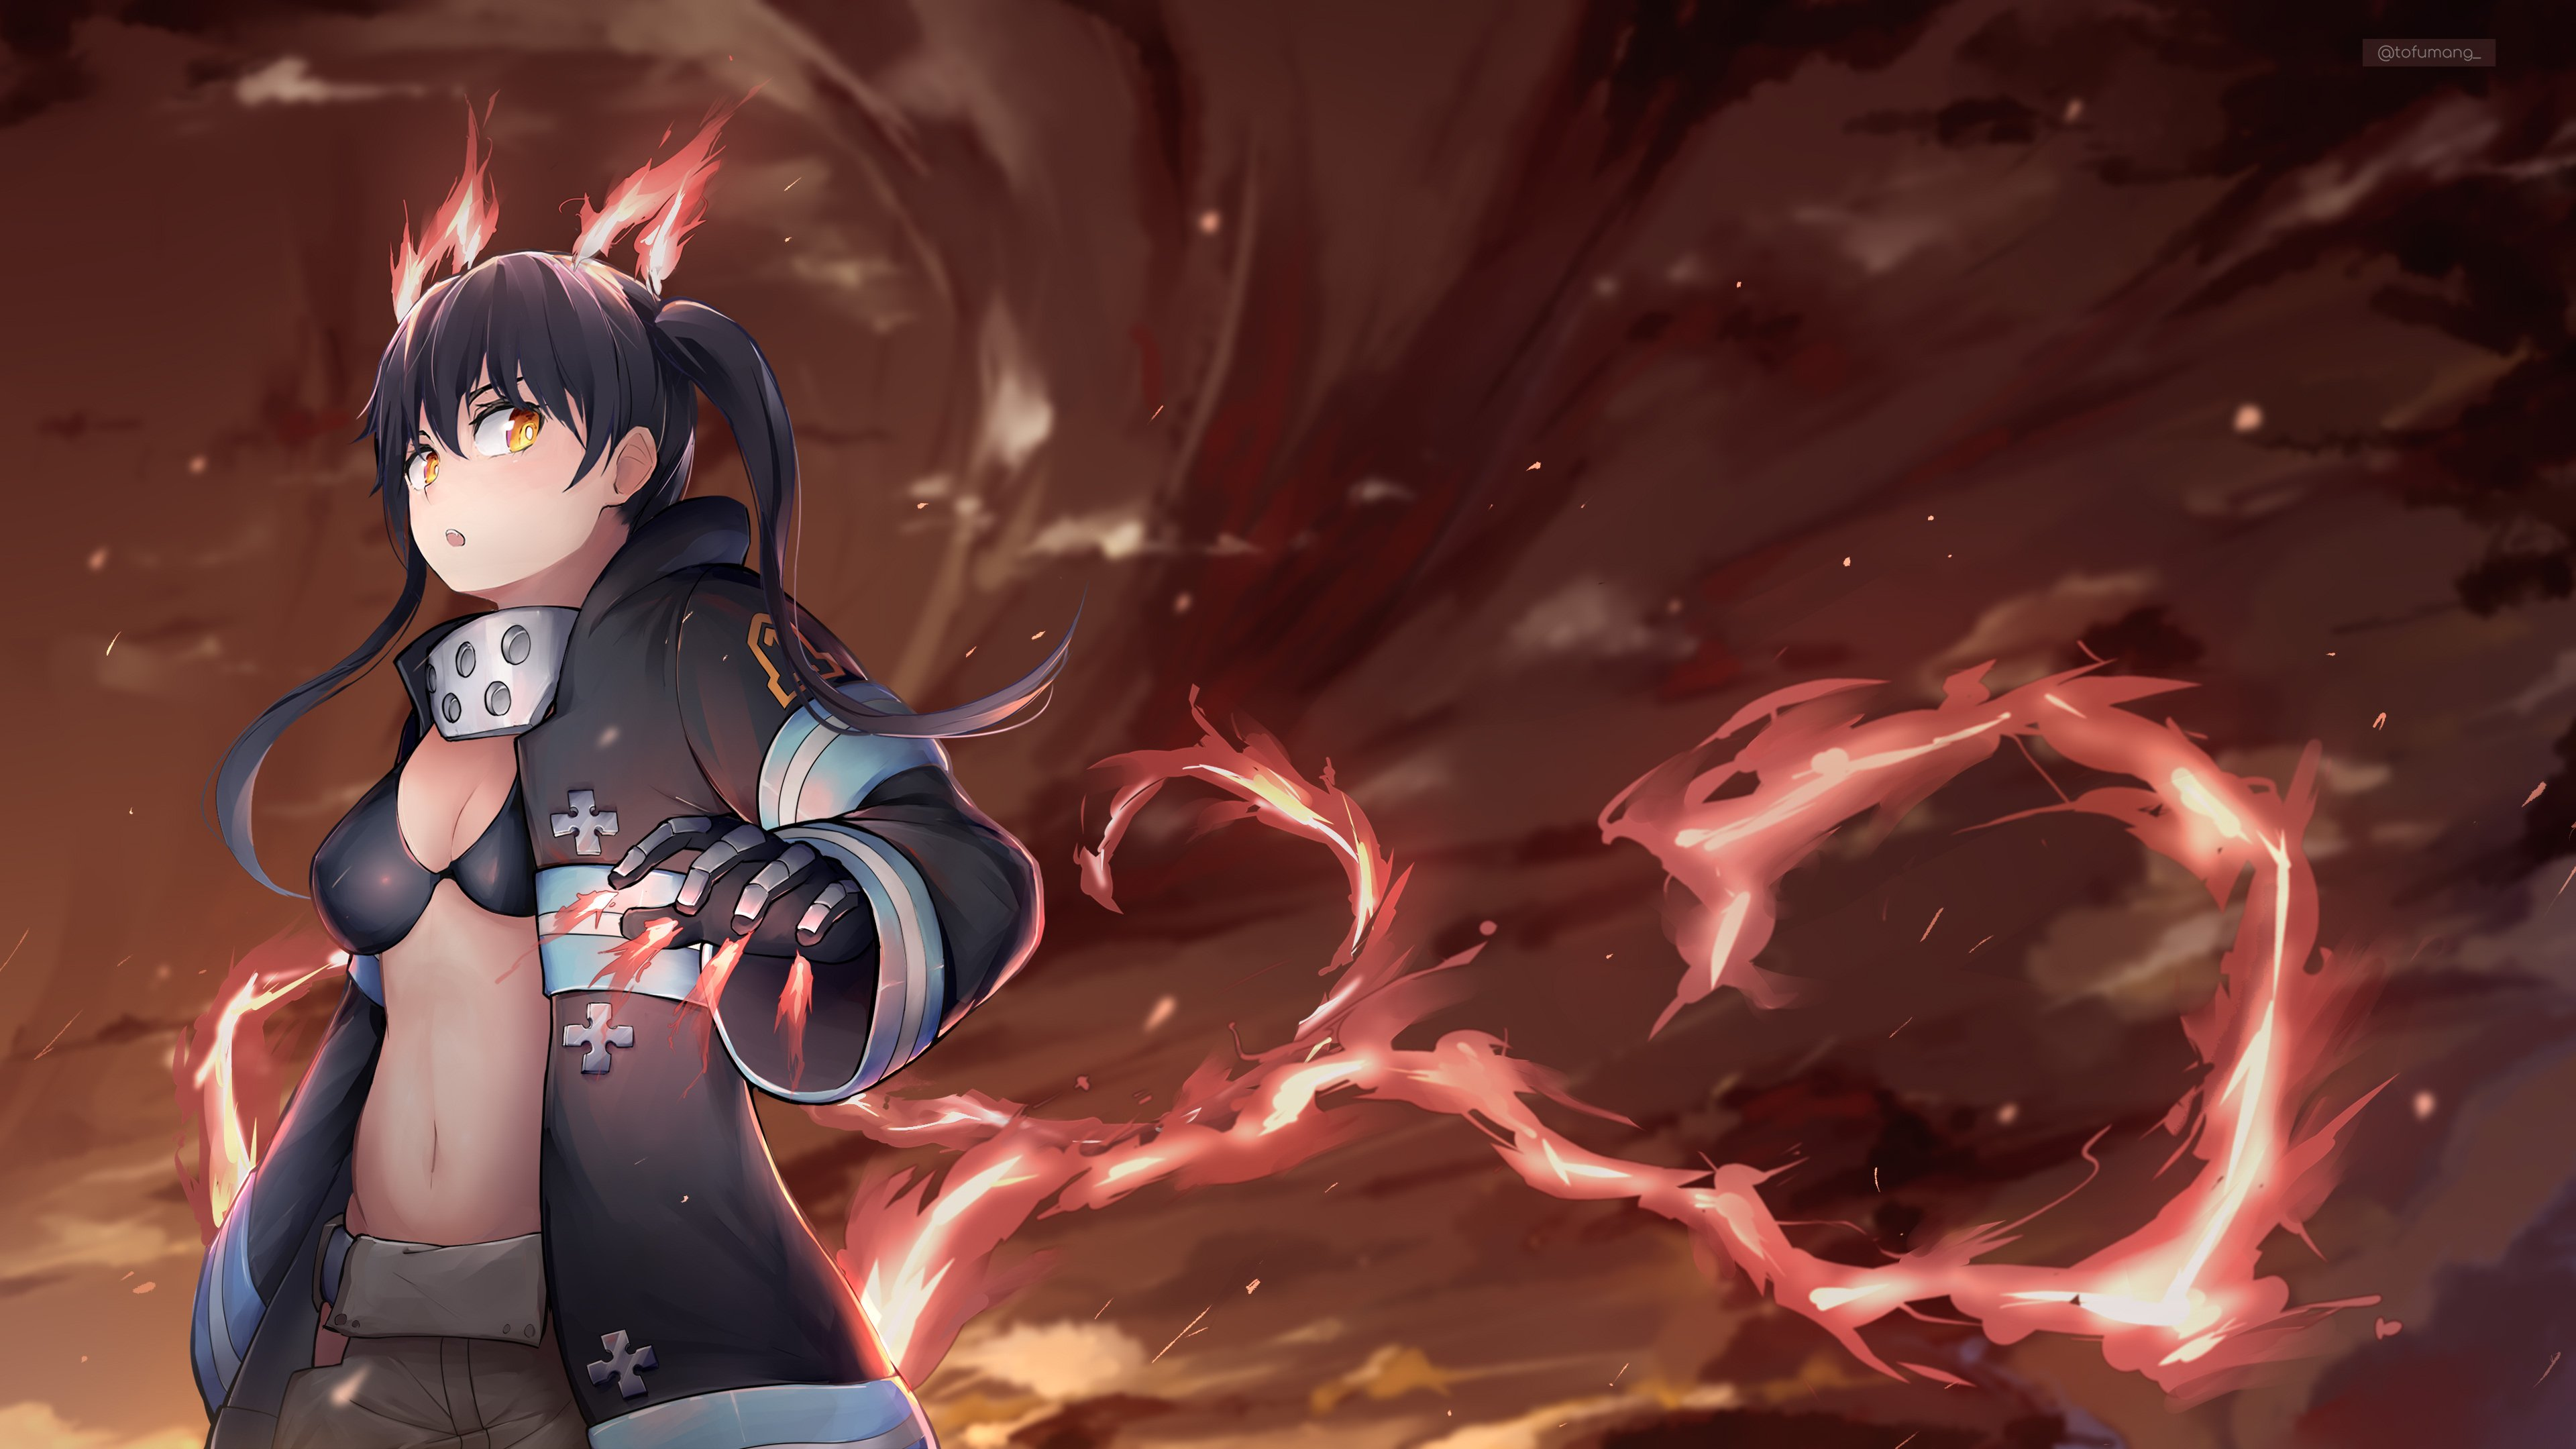 Fire Force Desktop Wallpapers Wallpaper Cave You can also upload and share your favorite fire force desktop wallpapers. fire force desktop wallpapers